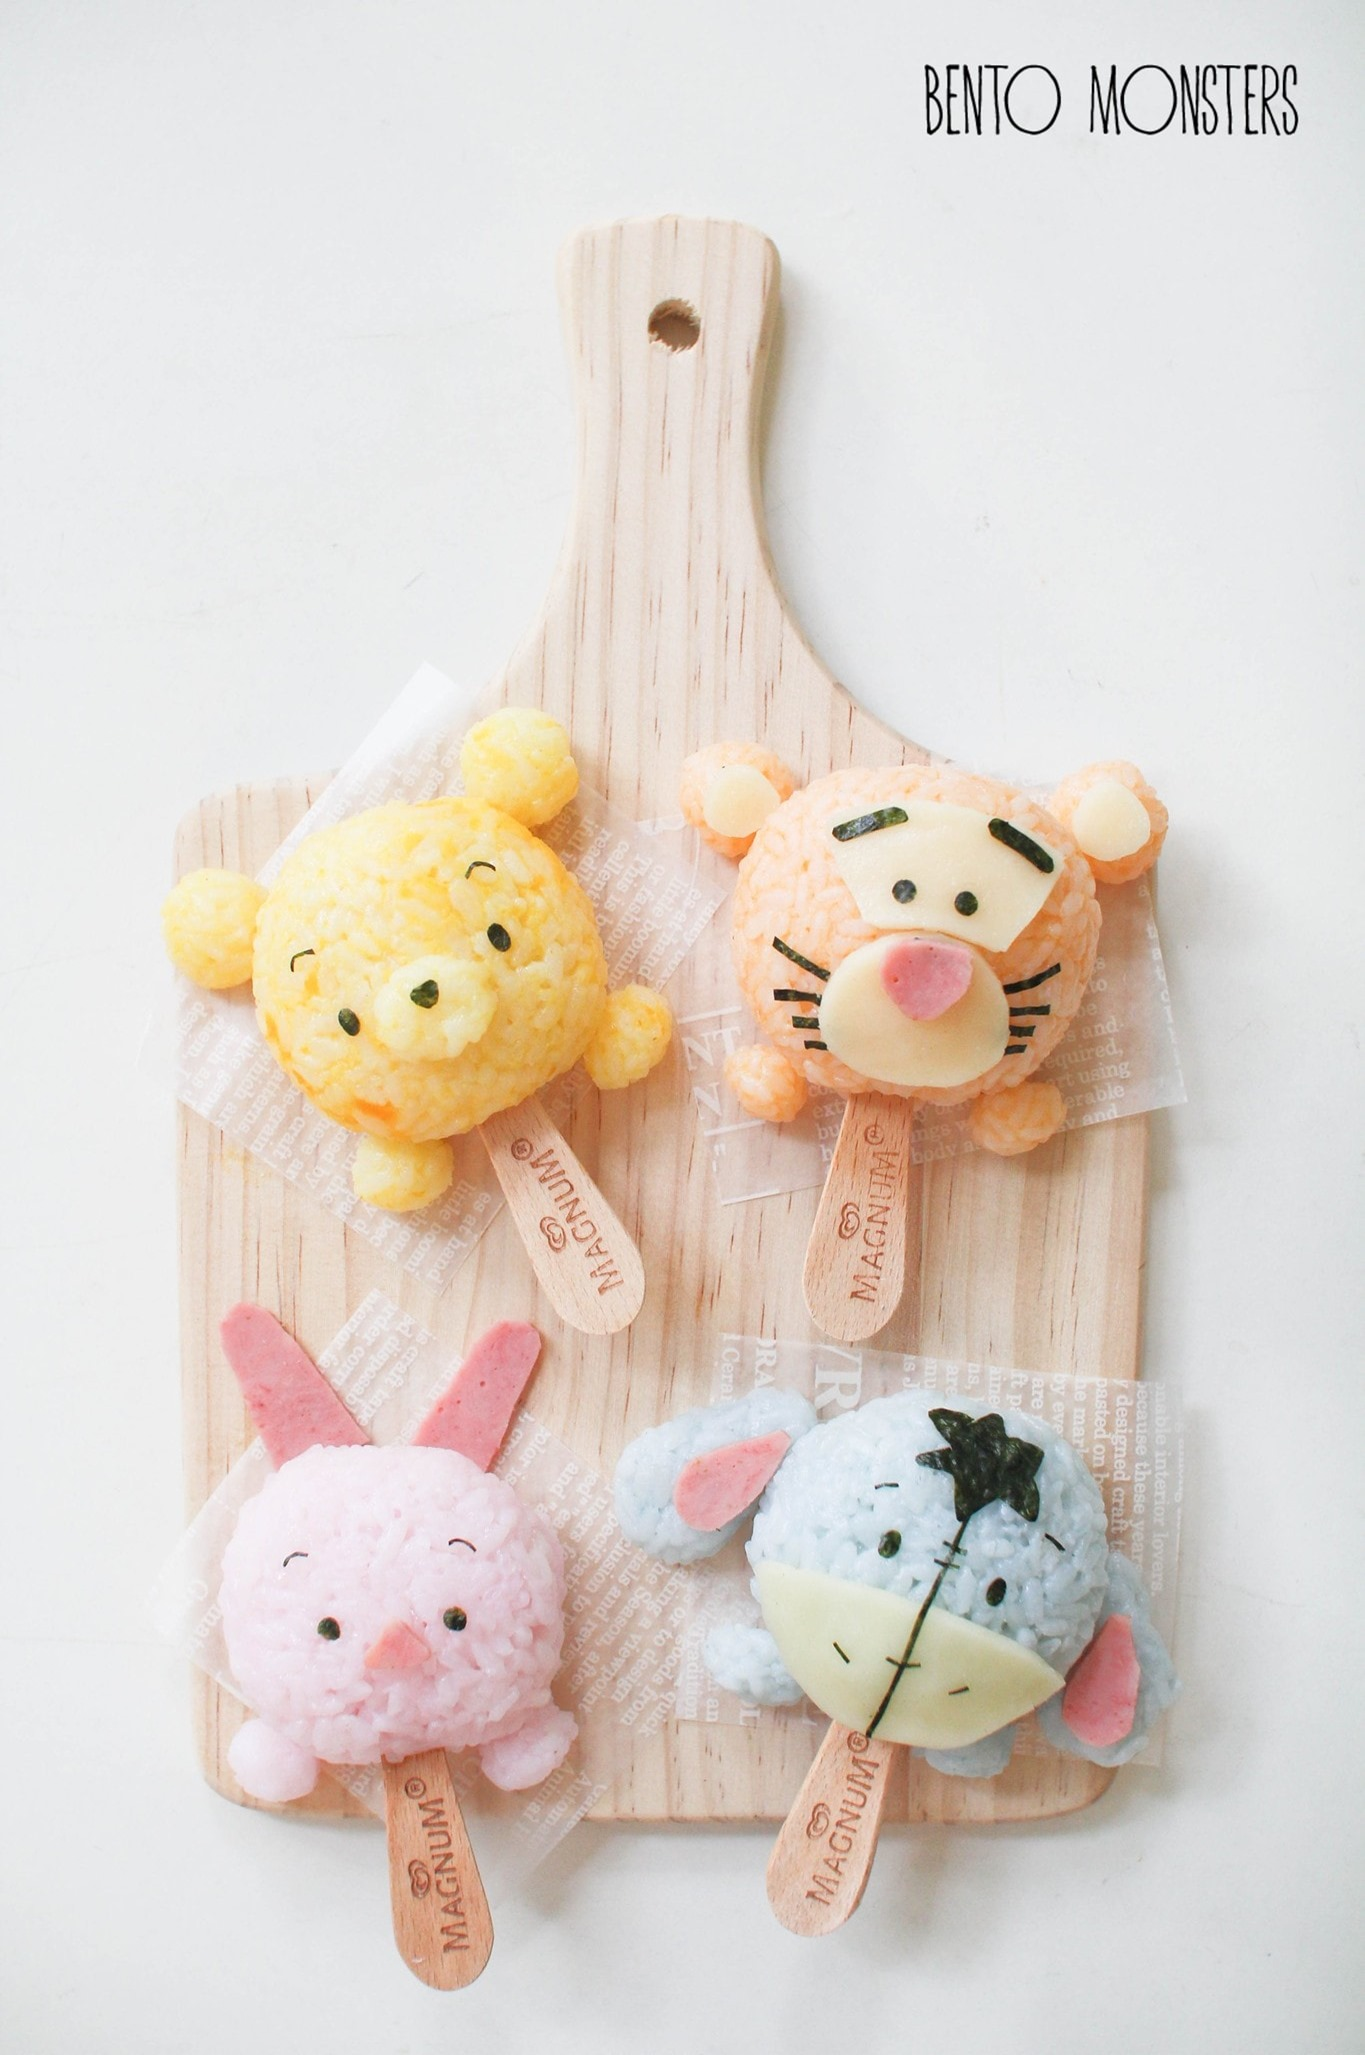 Winnie the Pooh Rice Balls made by Bento Monsters